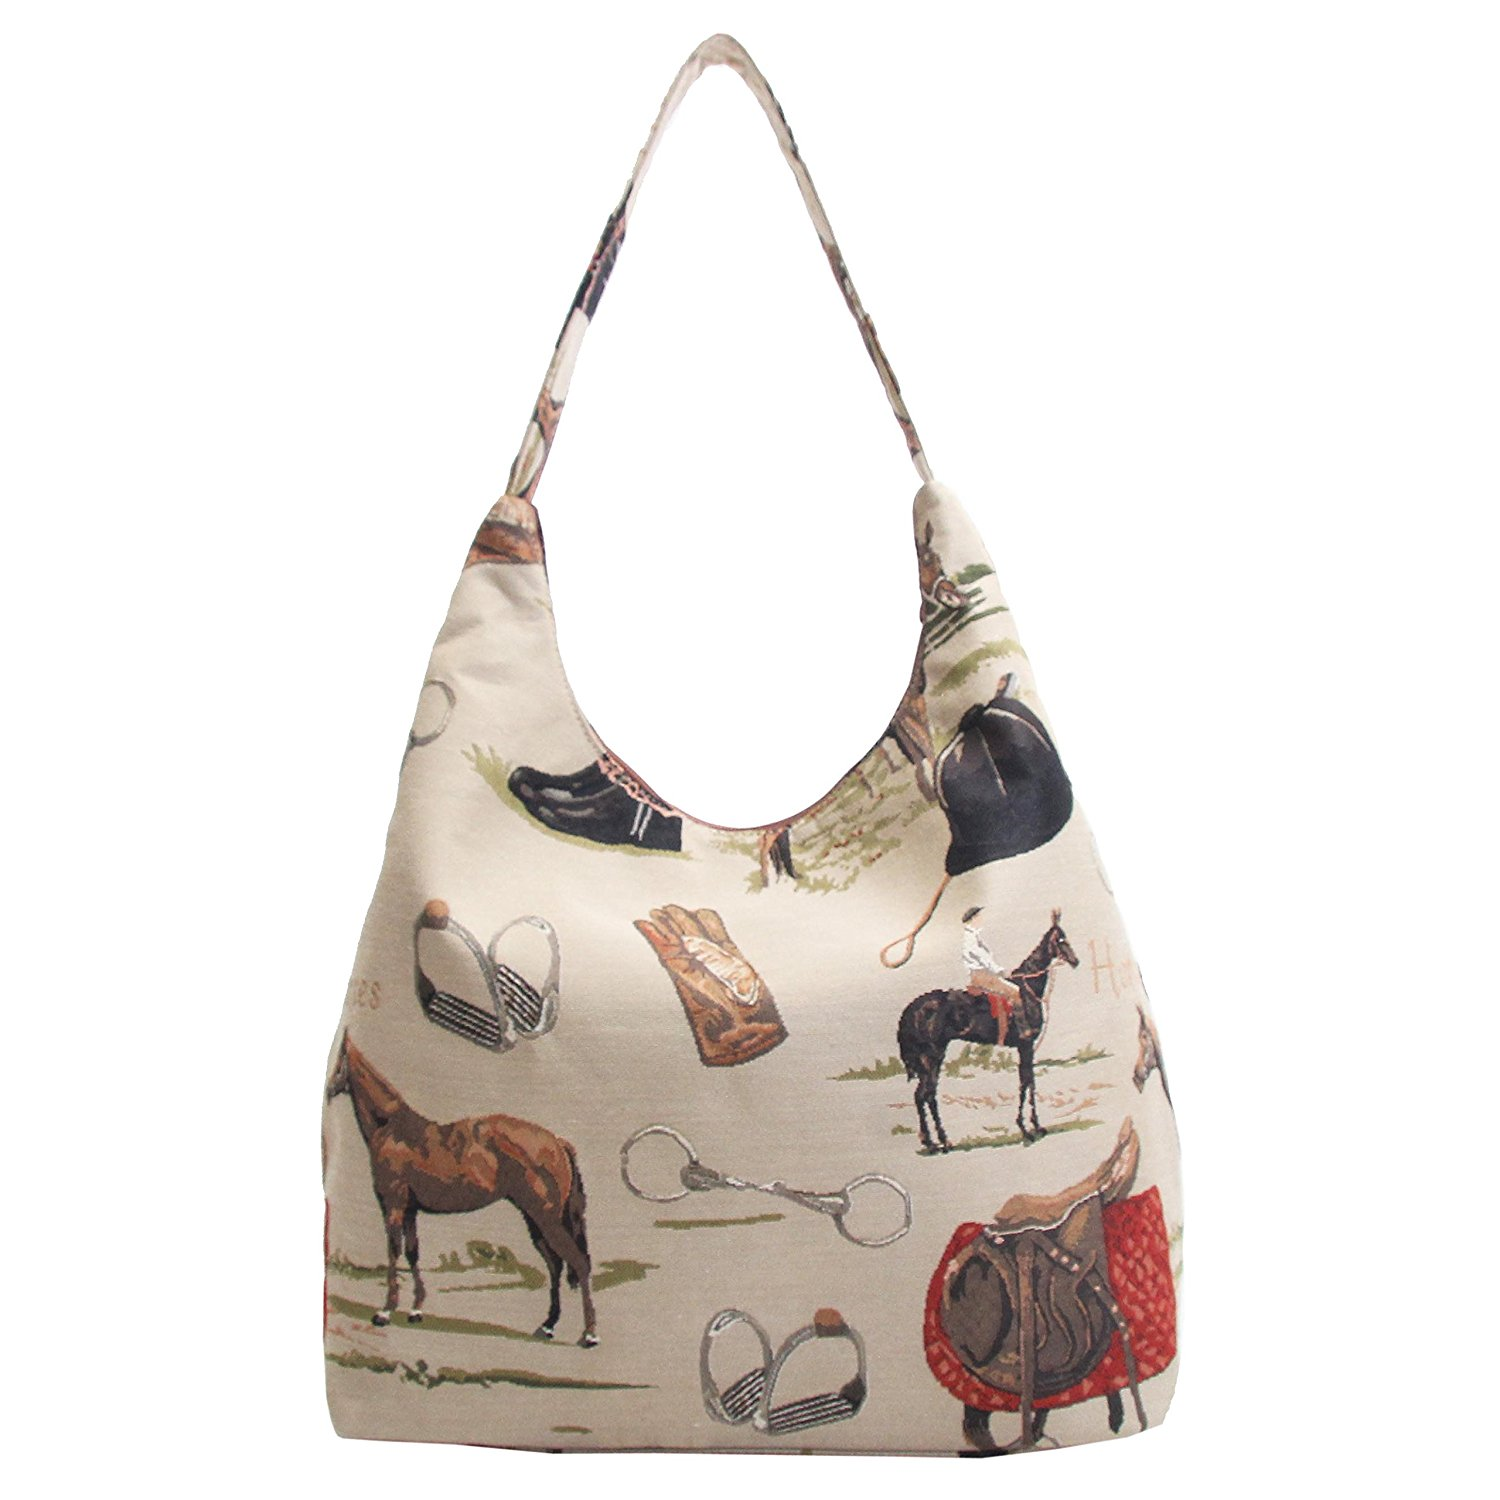 At Bag Cheap Deals BagFind On Line Zip Hobo HIYWEebD29